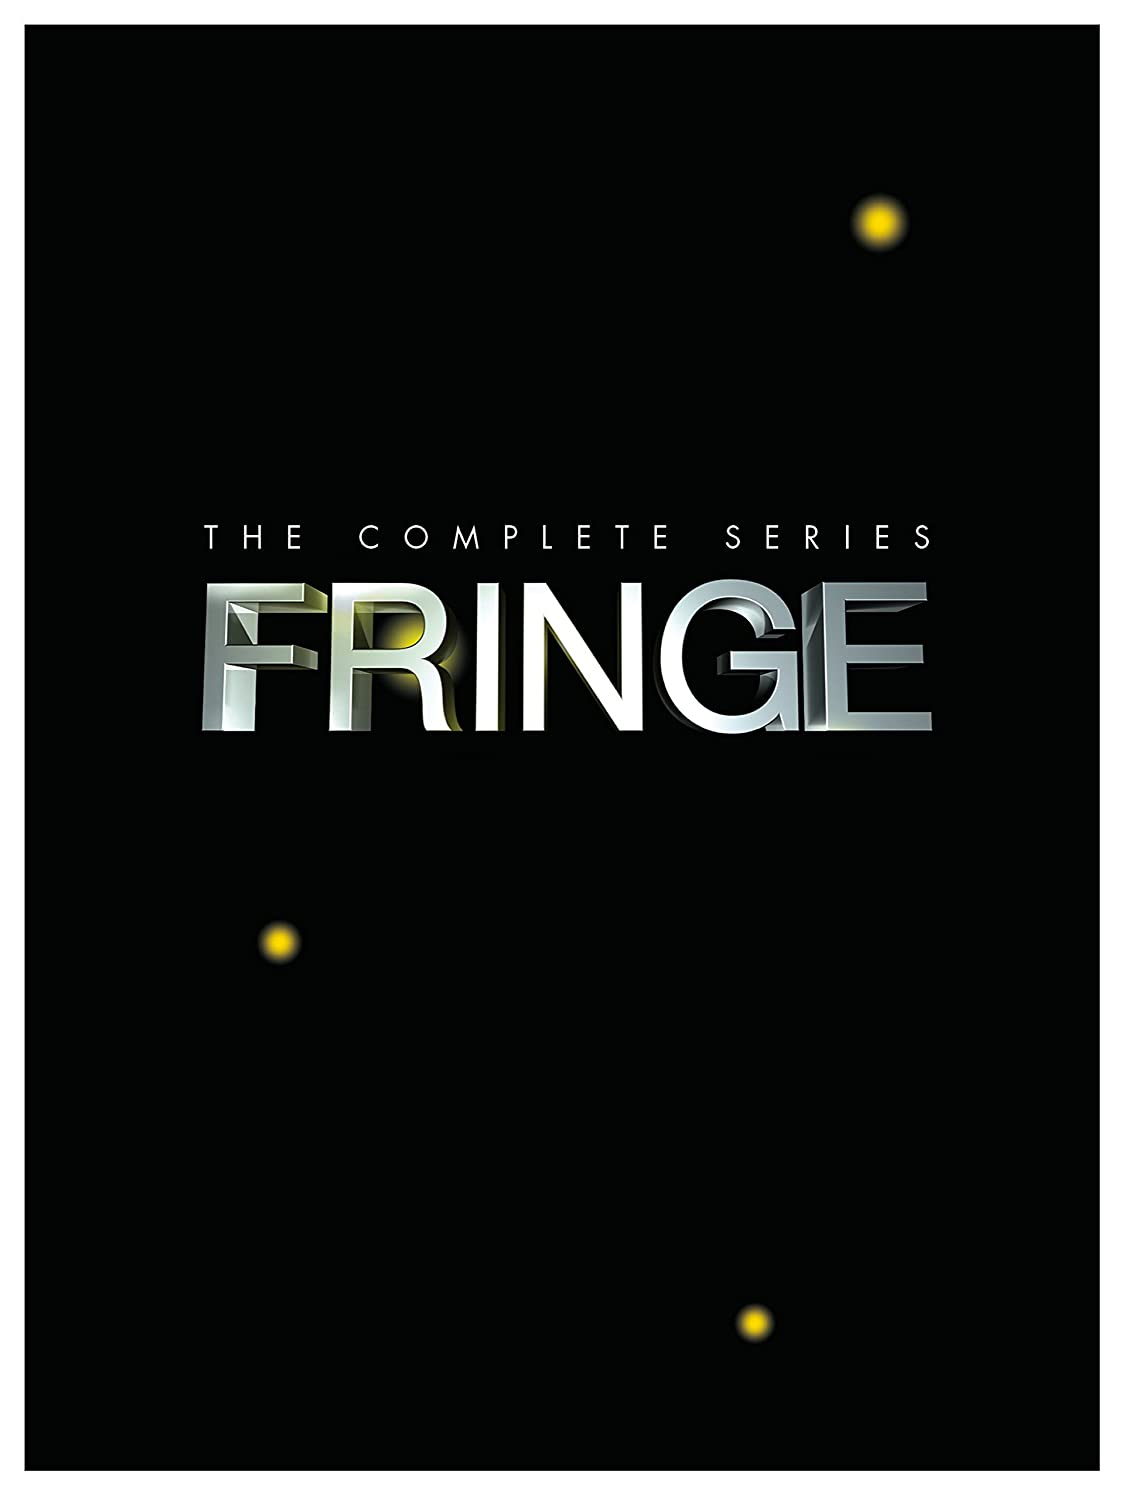 Fringe: The Complete Series Various Warner Home Entertainment 26180001 Horror / Sci-Fi / Fantasy